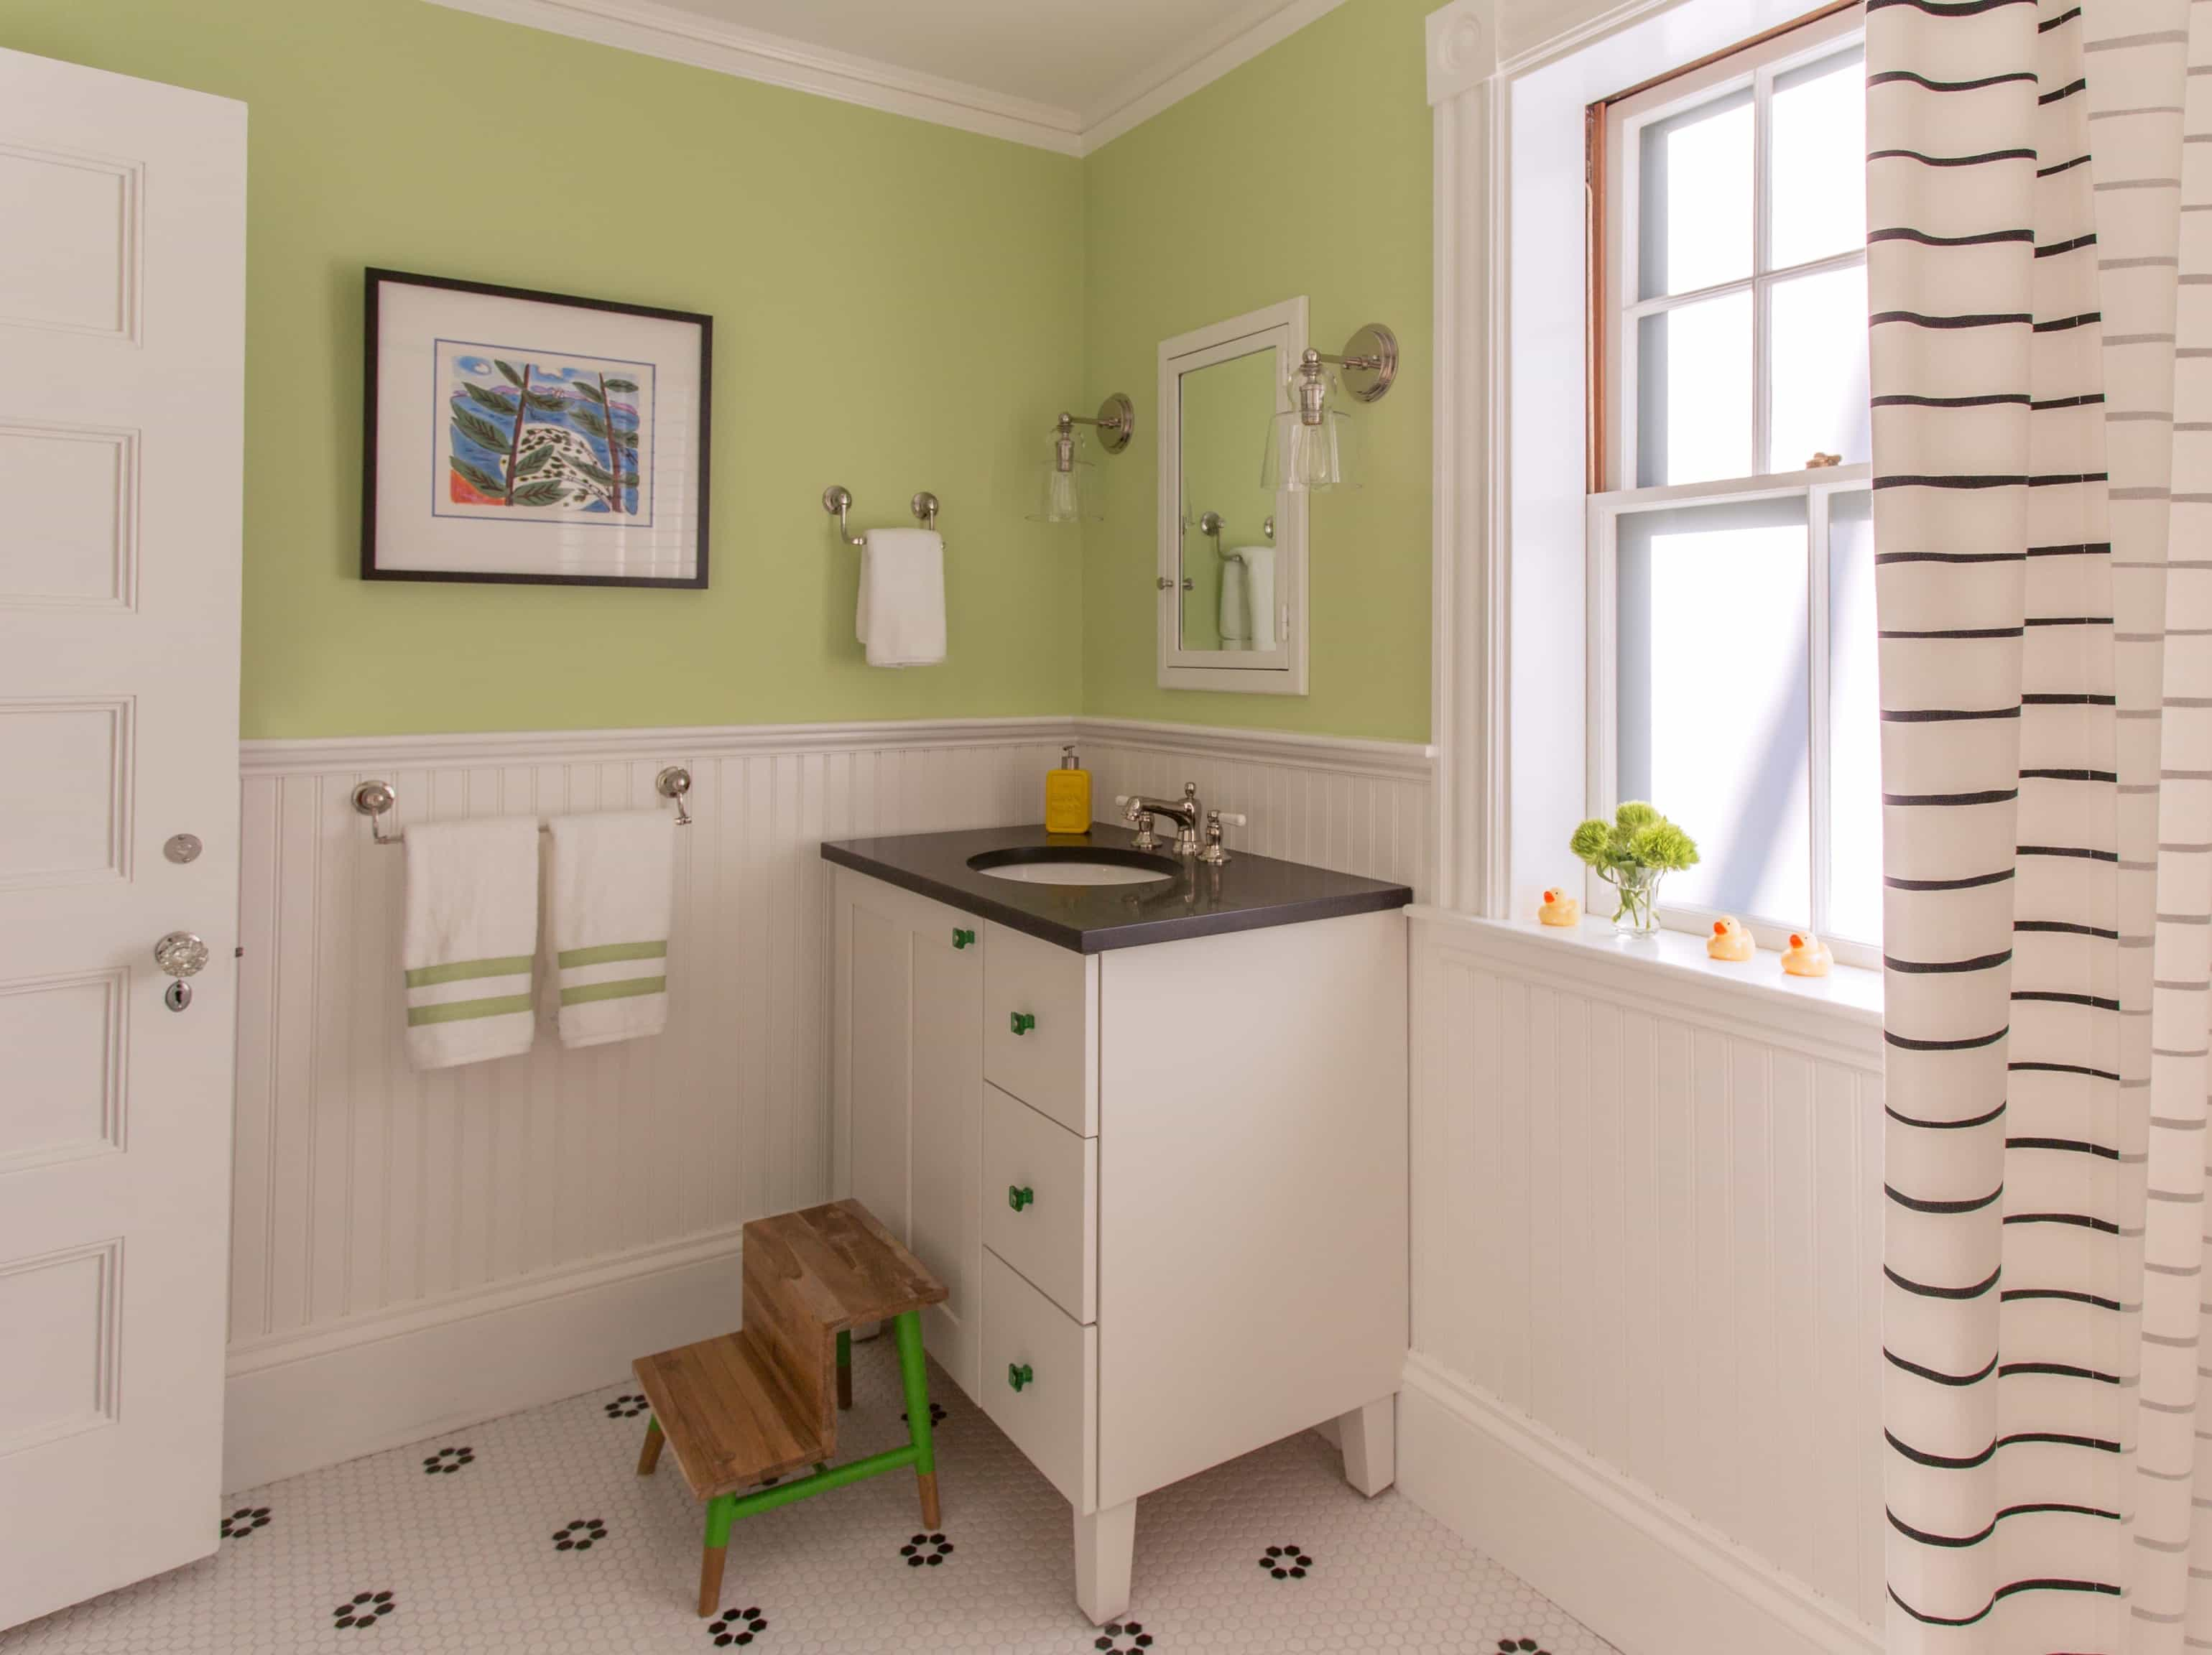 Featured Image of Green Cottage Bathroom With Black And White Tile Floor